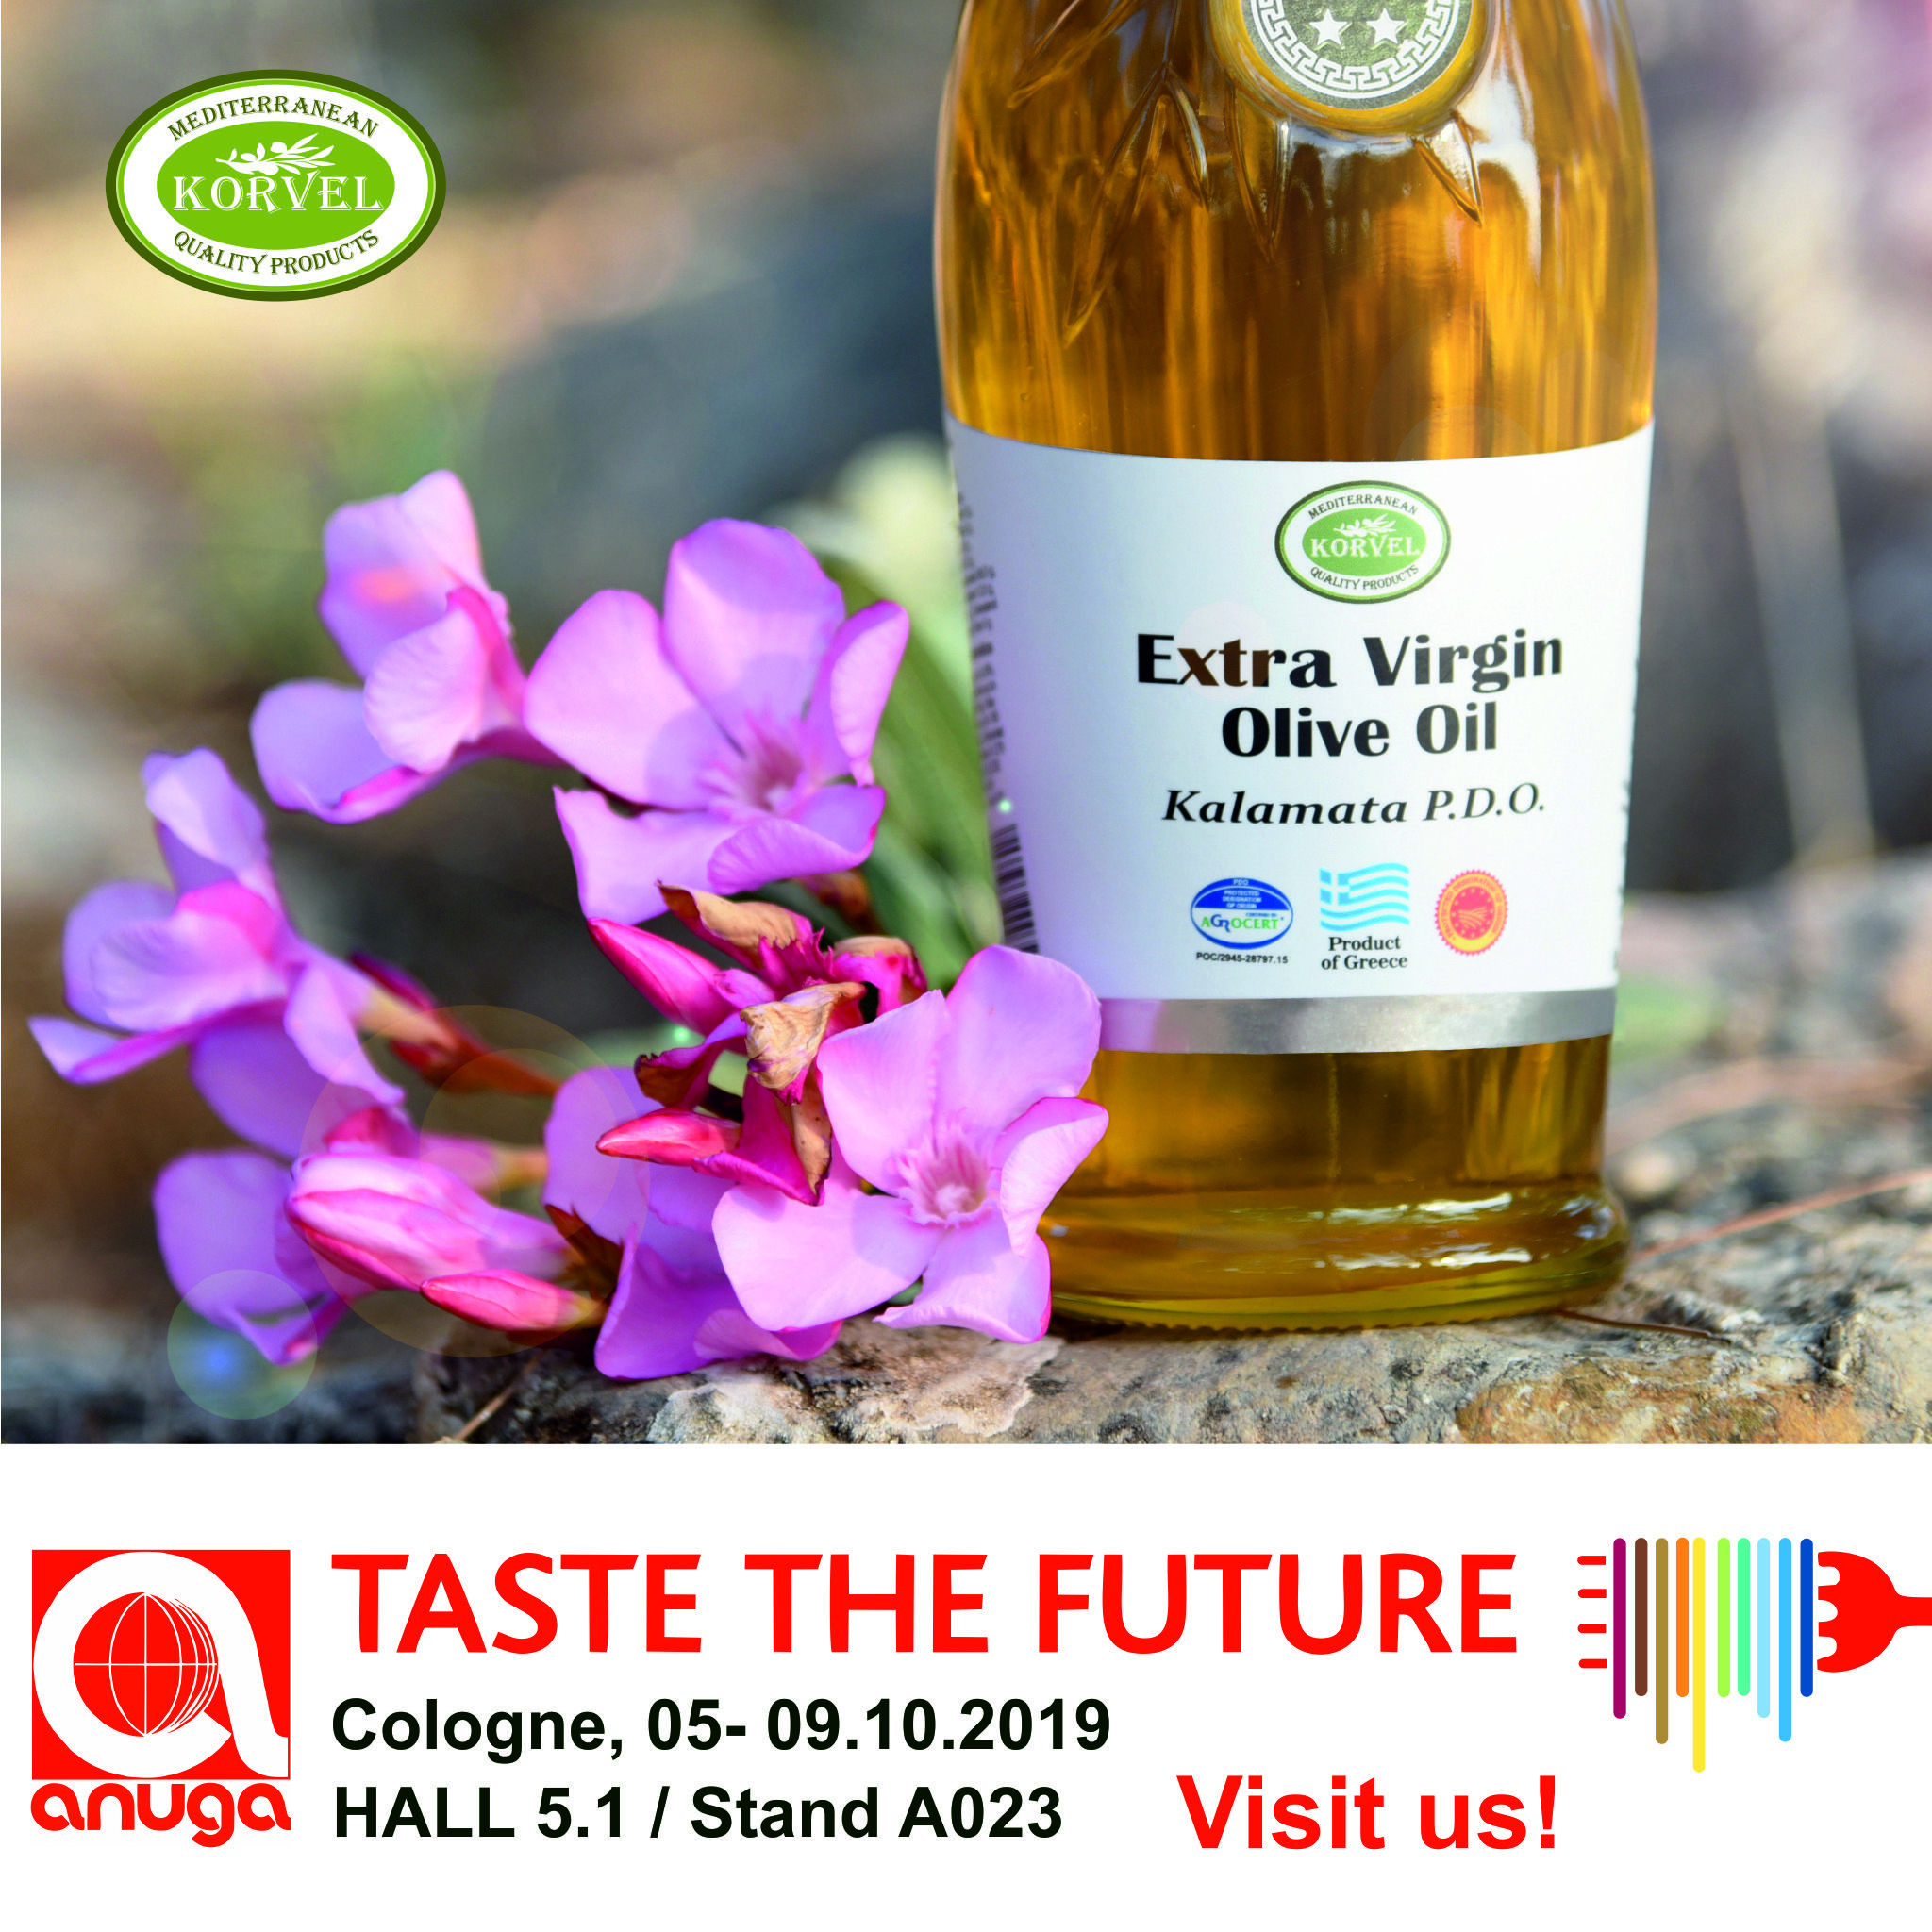 The Anuga 2019 in just a one month!